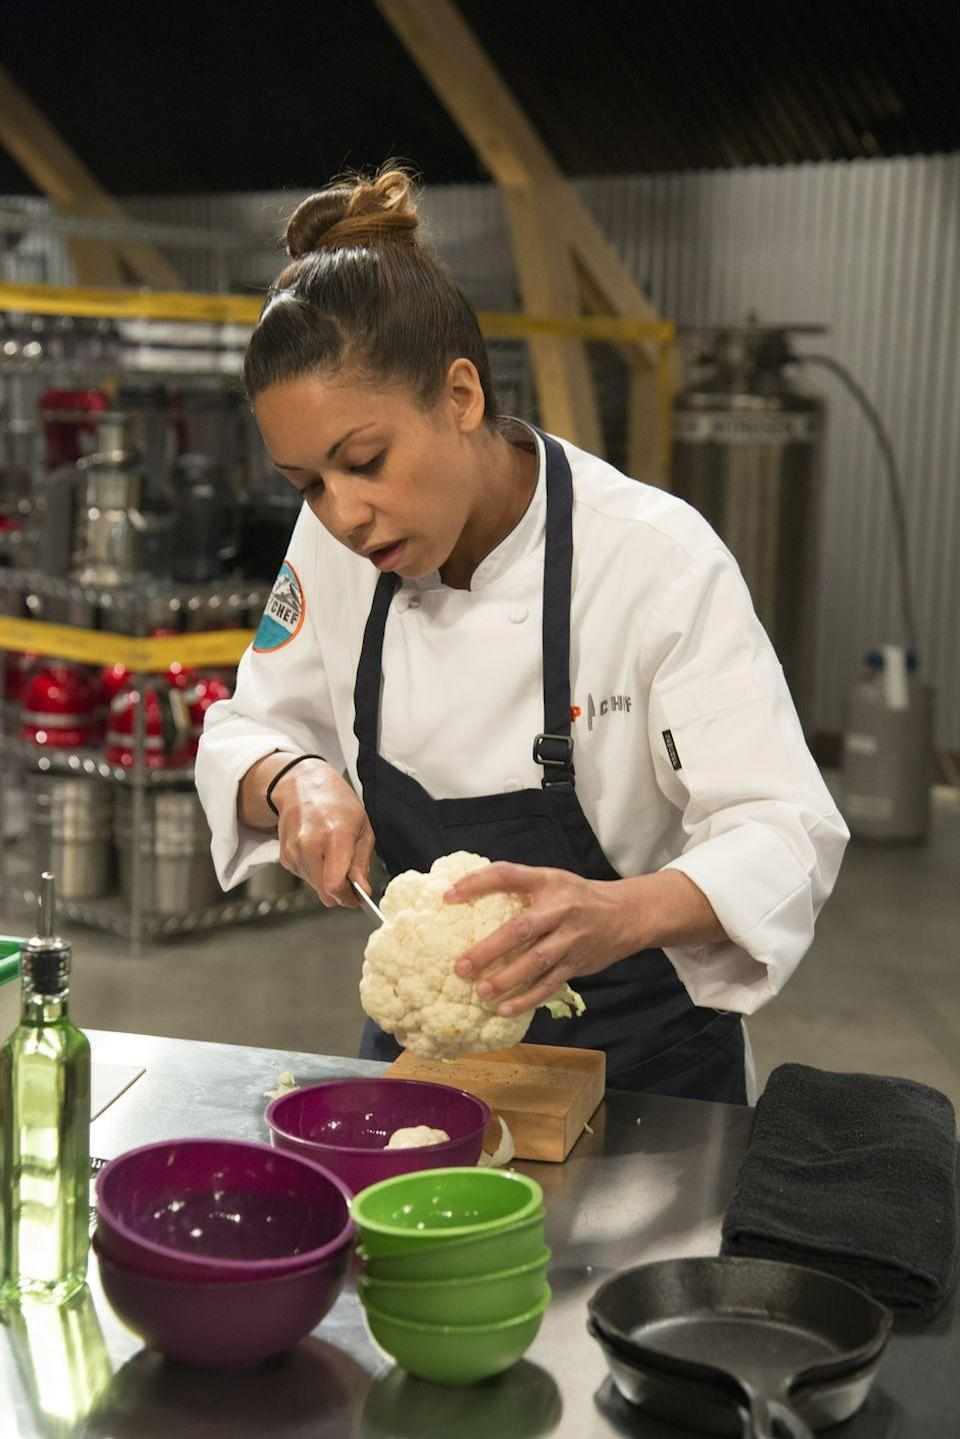 """<p>Season 18 of <em>Top Chef</em> was presented with the challenge of the COVID-19 pandemic. """"It wasn't ever a question of whether we could do it, it was a question more of when we could do it safely,"""" Dan Murphy, COO of the show's production company, Magical Elves, told <a href=""""https://www.realityblurred.com/realitytv/2021/03/top-chef-portland-behind-the-scenes-producers-interview/"""" rel=""""nofollow noopener"""" target=""""_blank"""" data-ylk=""""slk:Reality Blurred"""" class=""""link rapid-noclick-resp"""">Reality Blurred</a>. Production followed CDC guidelines and housed all cast and crew in one hotel to limit outside exposure.</p>"""